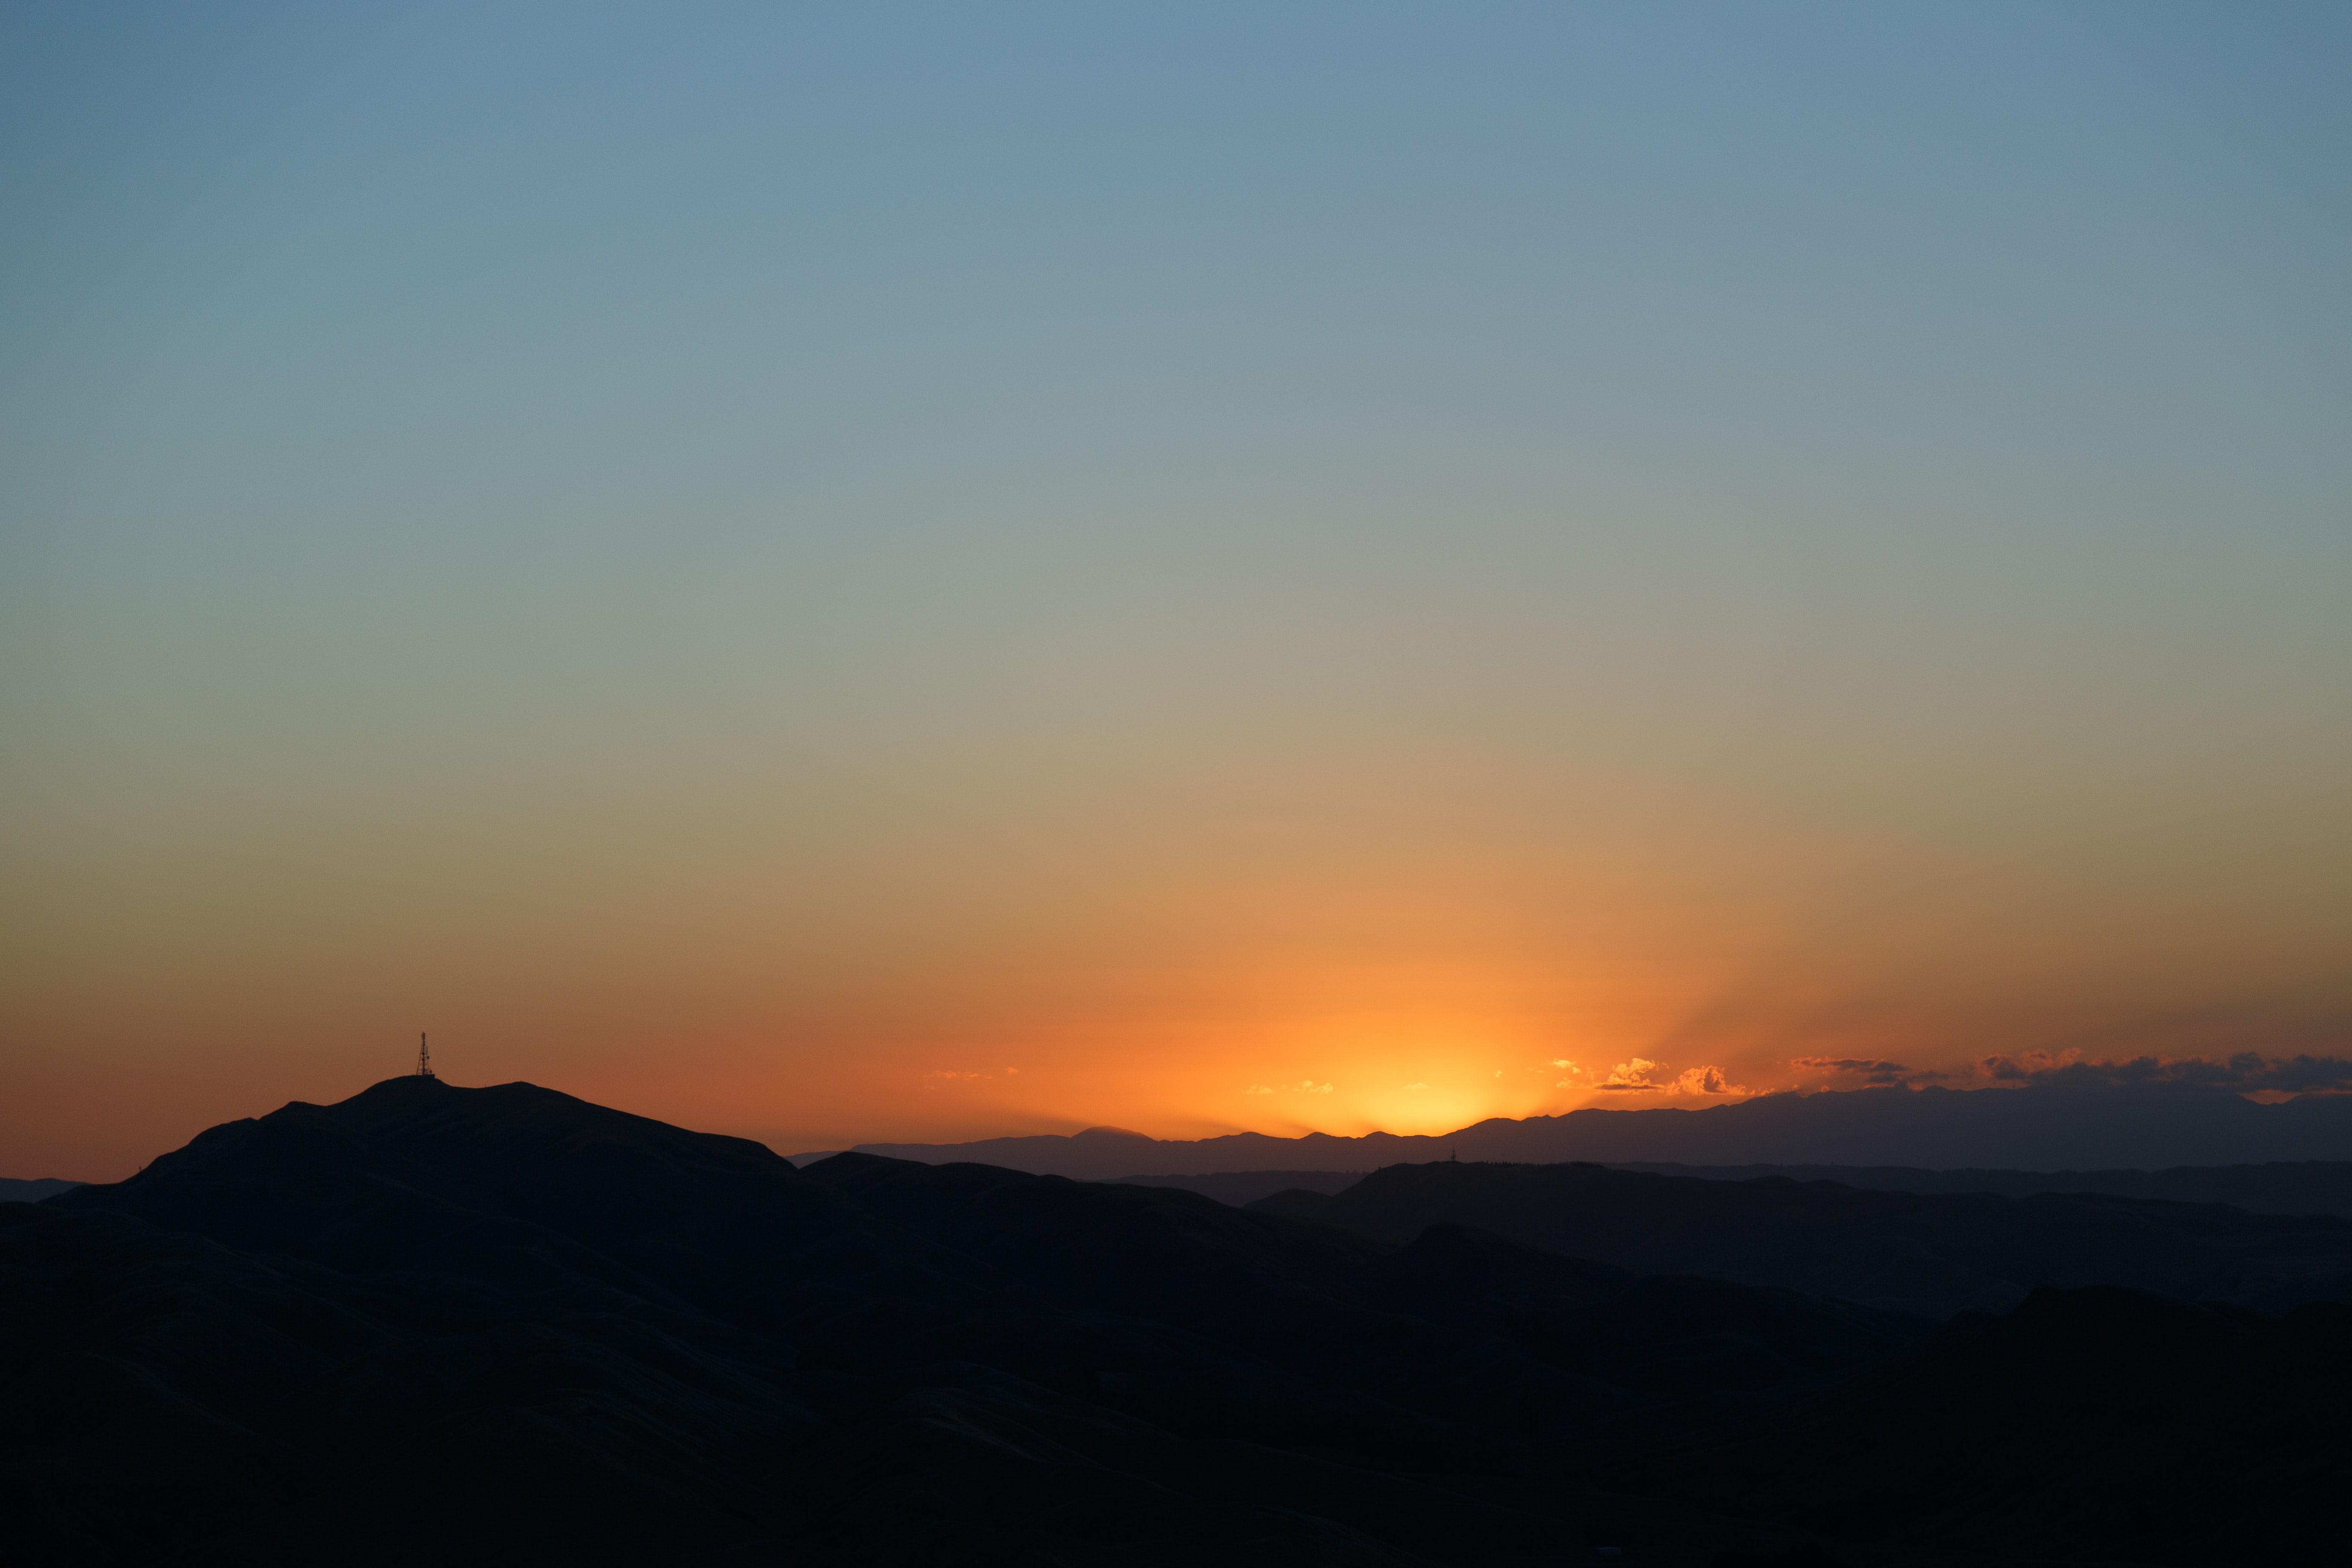 Low golden sunset with the sun behind mountains.